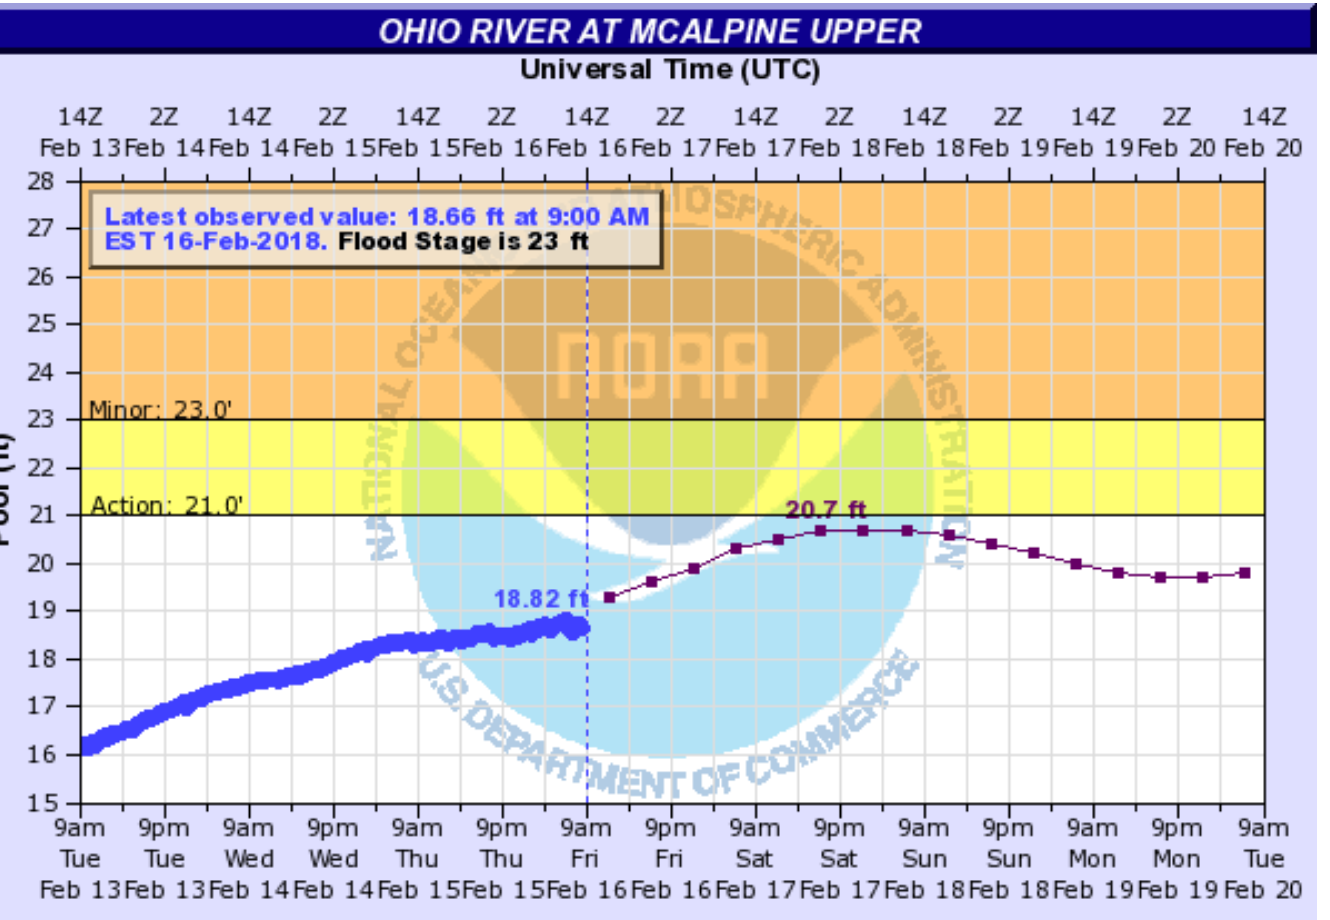 TIMELINE: Ohio River likely to stay above flood stage for days